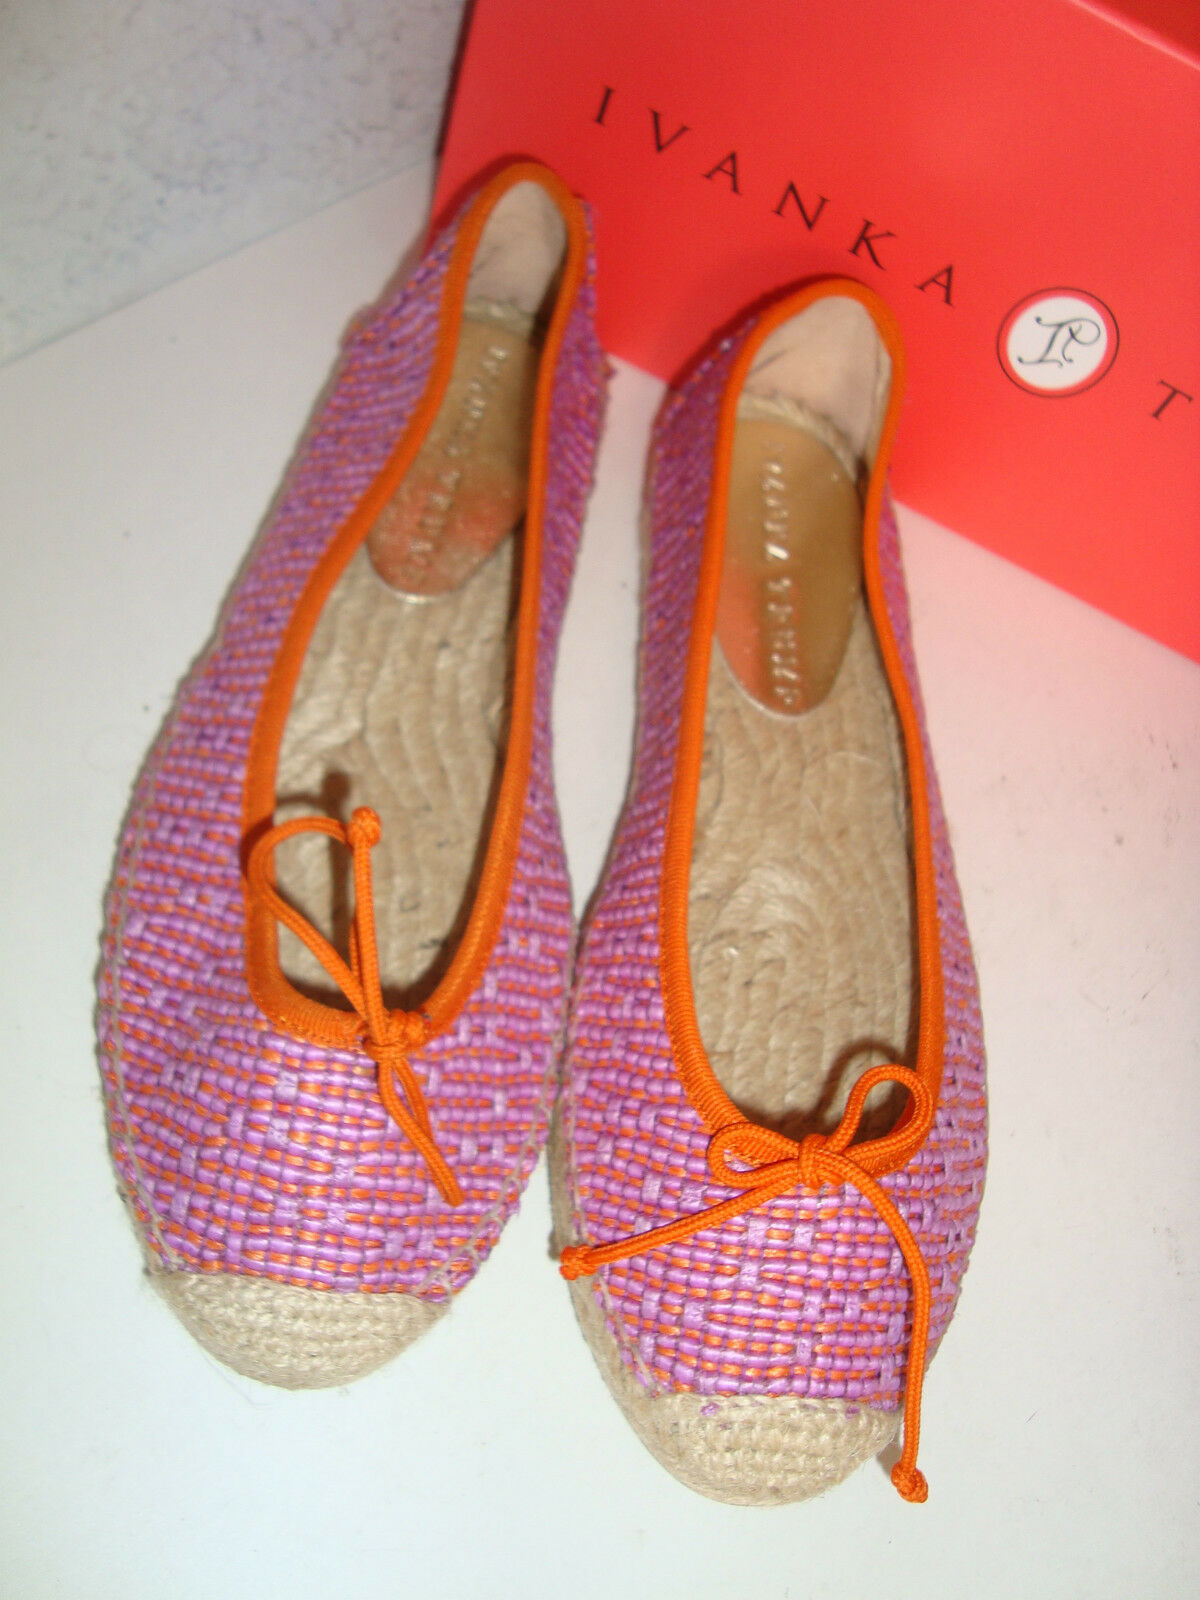 Ivanka Trump New Damenschuhe Megan Multi Farbe Flat Schuhes 8 Medium